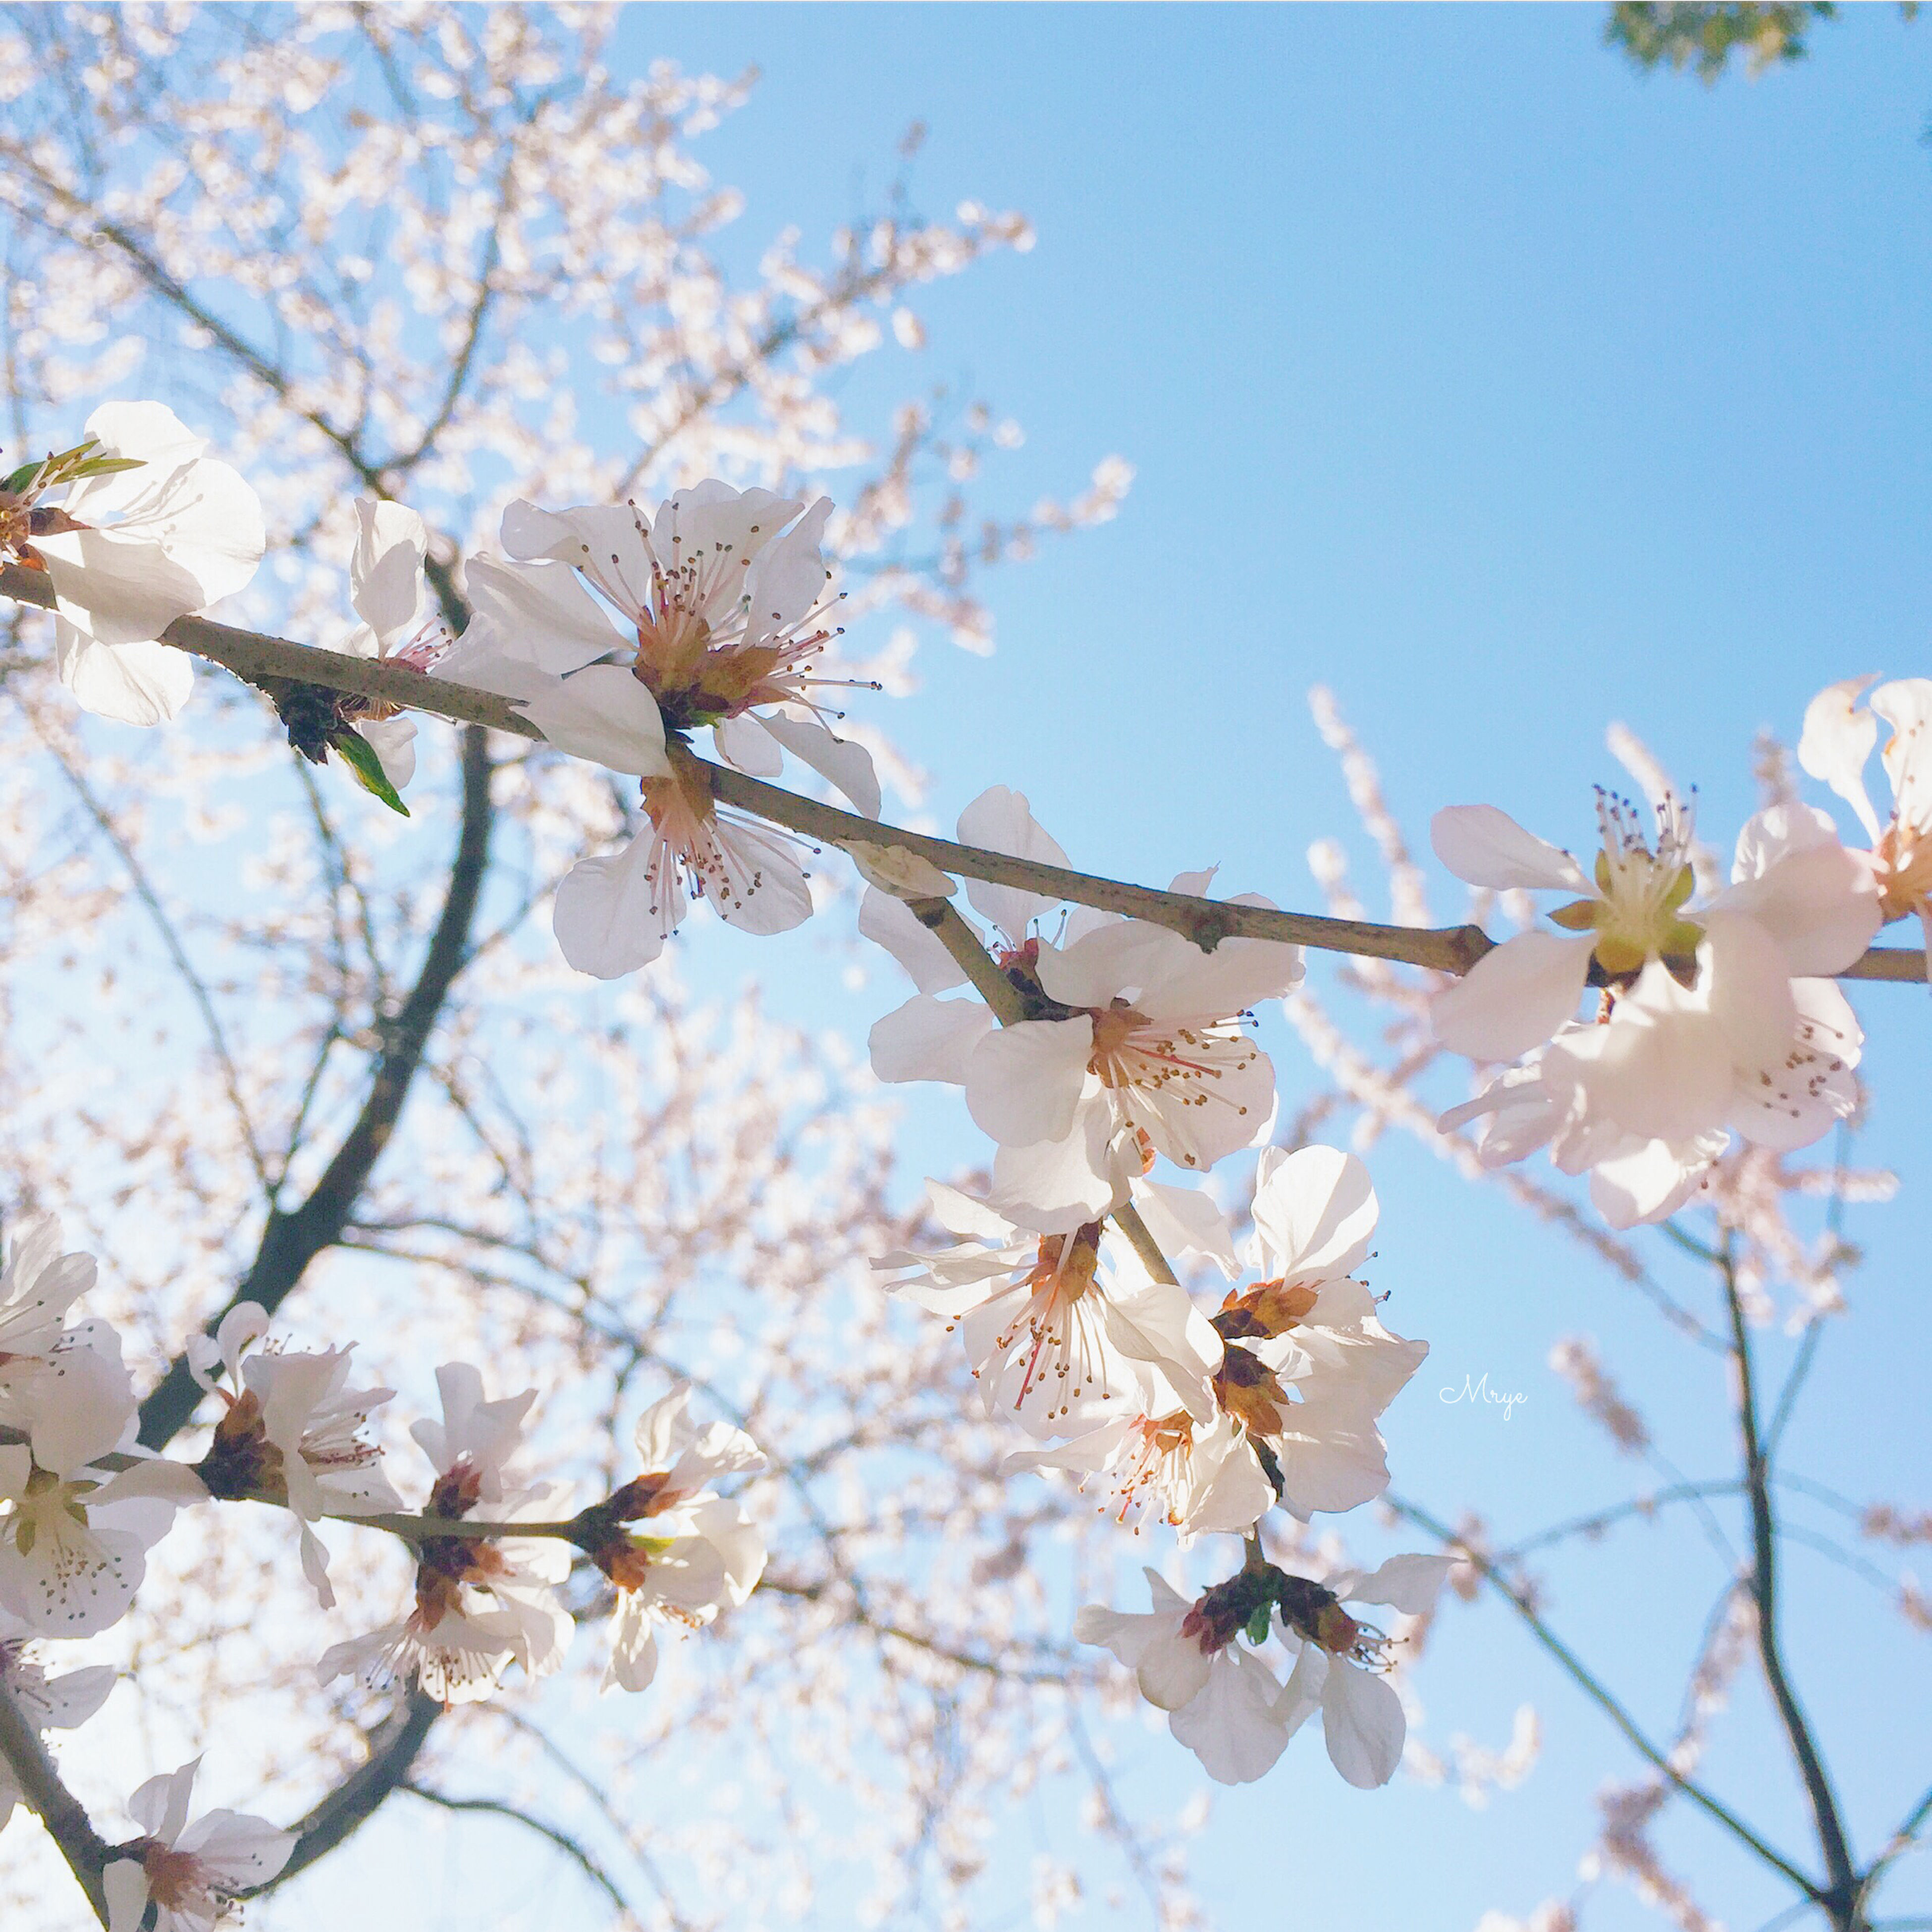 flower, branch, low angle view, freshness, tree, fragility, growth, cherry blossom, blossom, beauty in nature, nature, cherry tree, clear sky, sky, in bloom, springtime, blooming, petal, twig, fruit tree